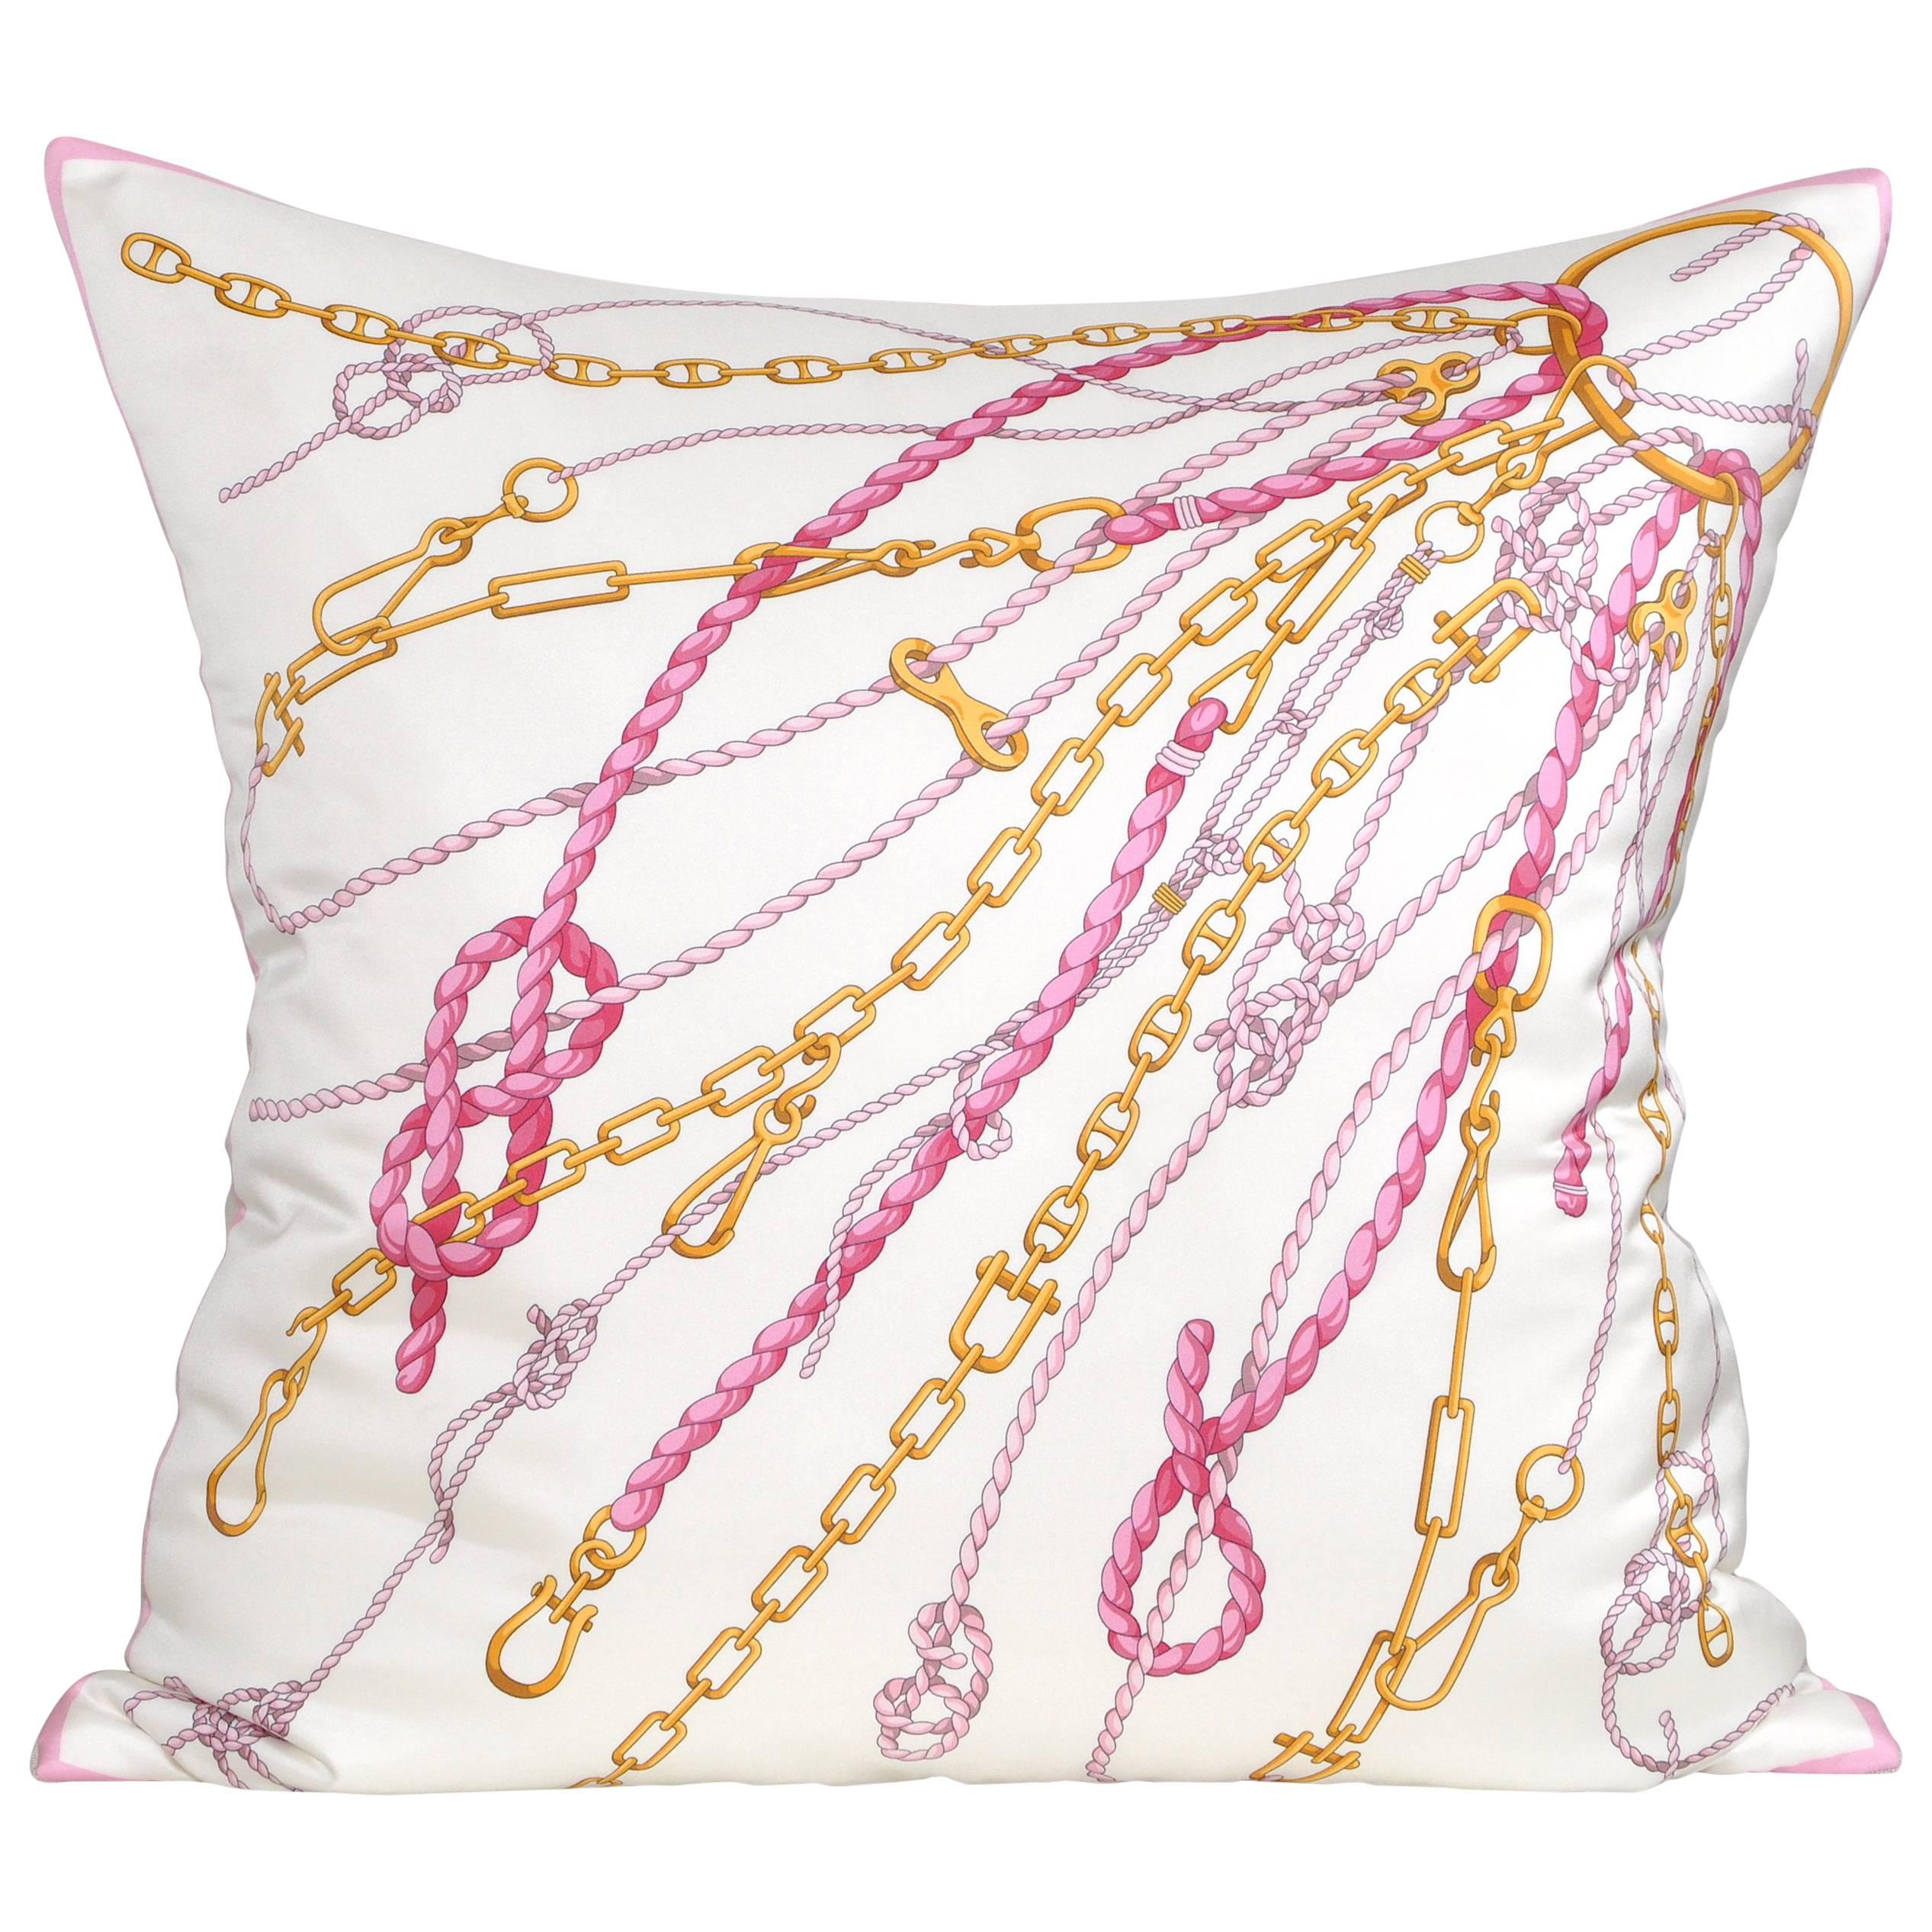 blossom cherry large pale accent throw pillows pillow designs pink carousel all